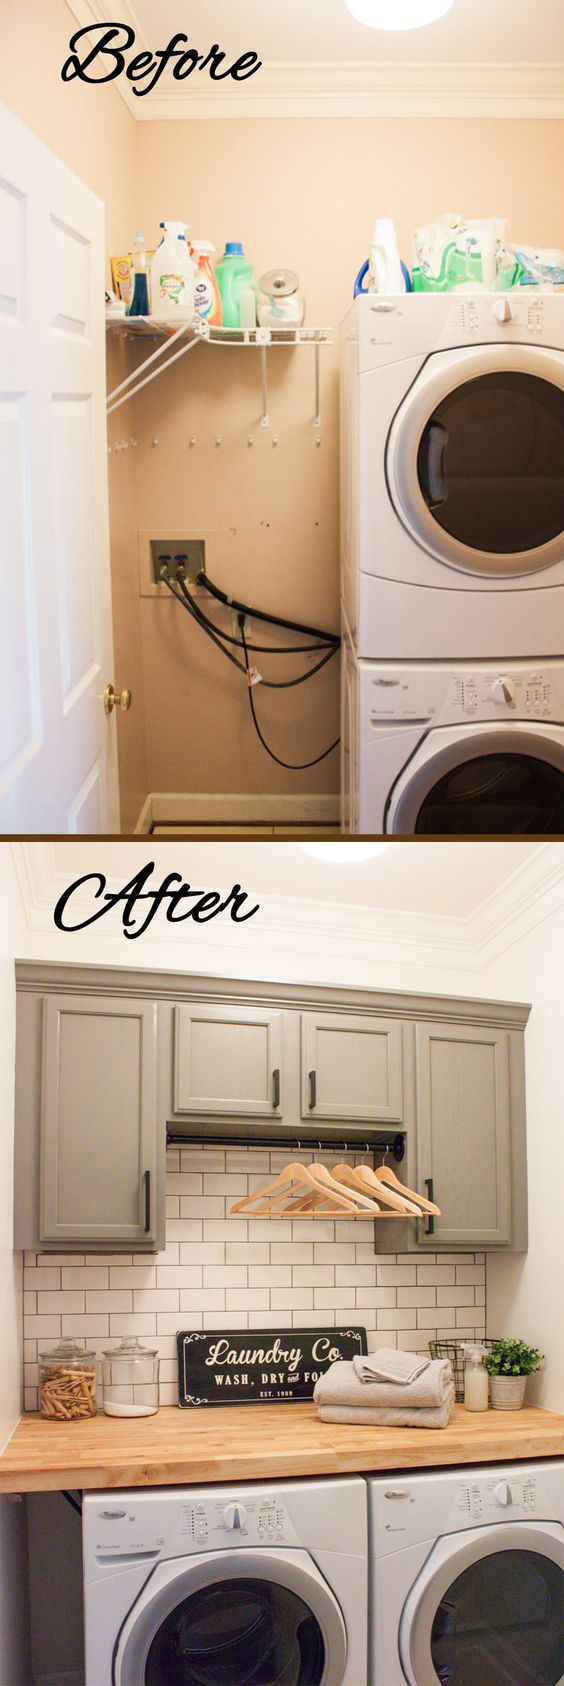 laundry room furniture. Basement Laundry Room Ideas Before And After Furniture